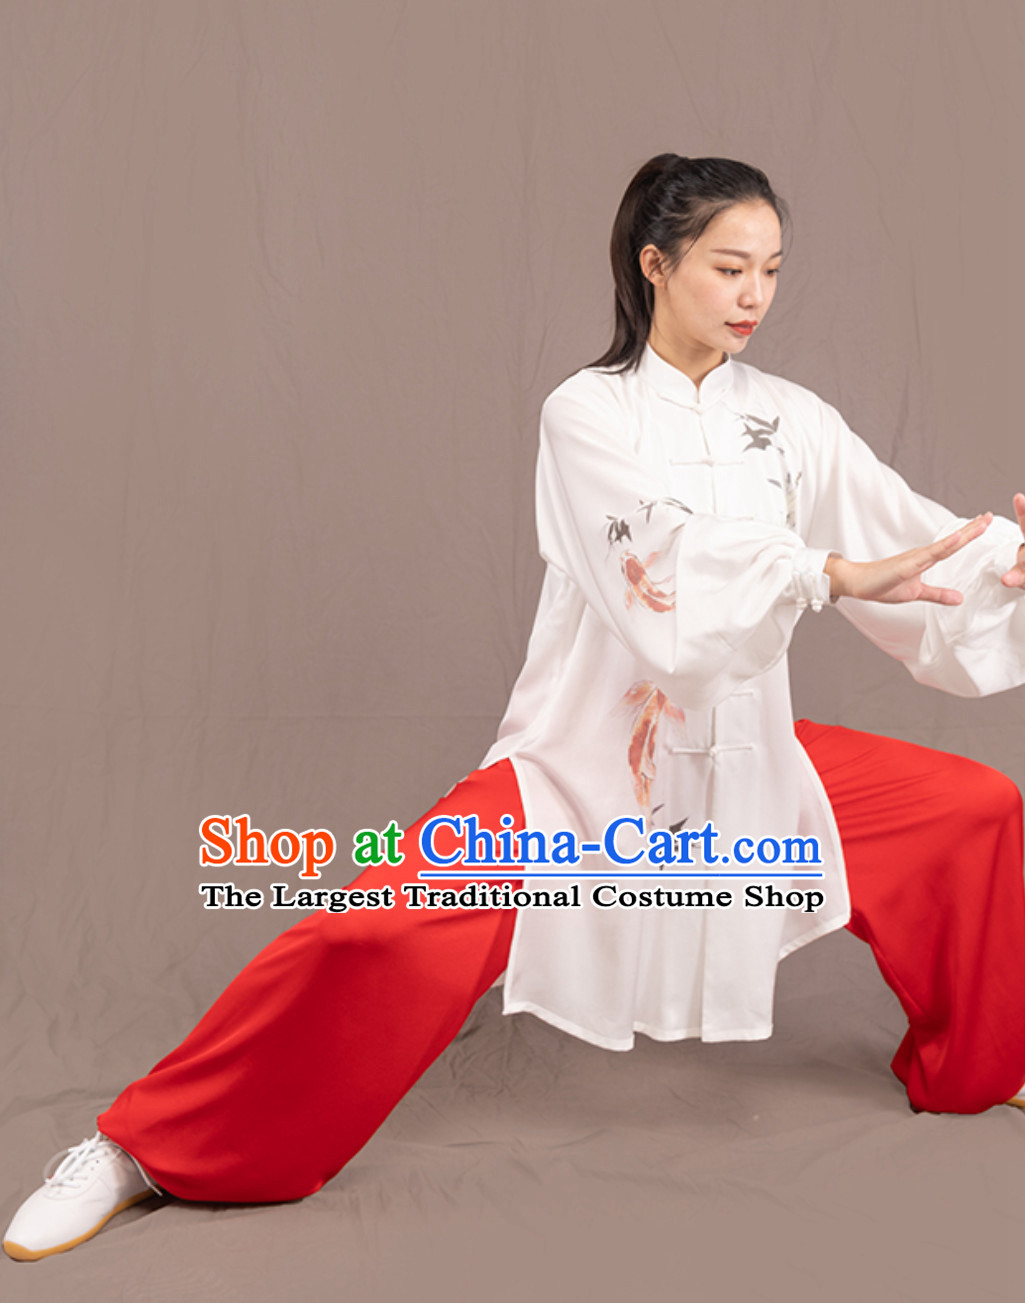 Top Chinese Traditional Competition Championship Professional Tai Chi Uniforms Taiji Kung Fu Wing Chun Kungfu Tai Ji Sword Master Clothing Suits Clothes for Women